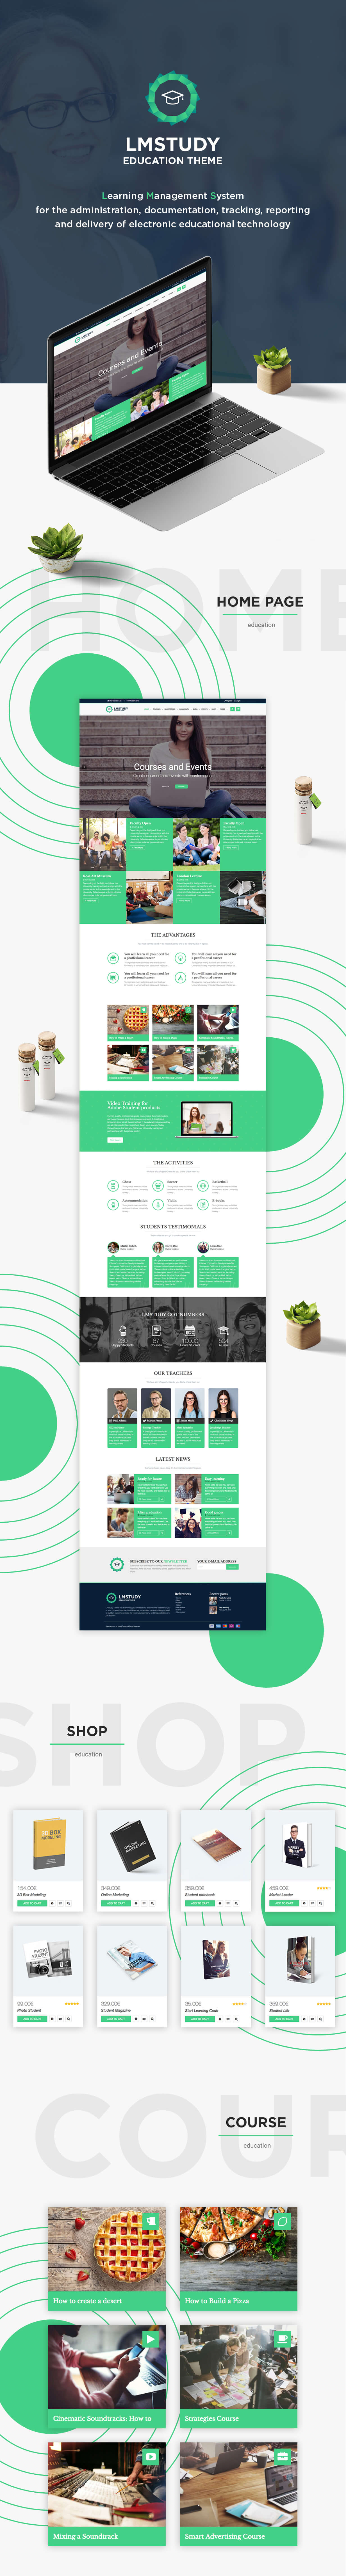 LMStudy - Course / Learning / Education LMS WooCommerce Theme - 1